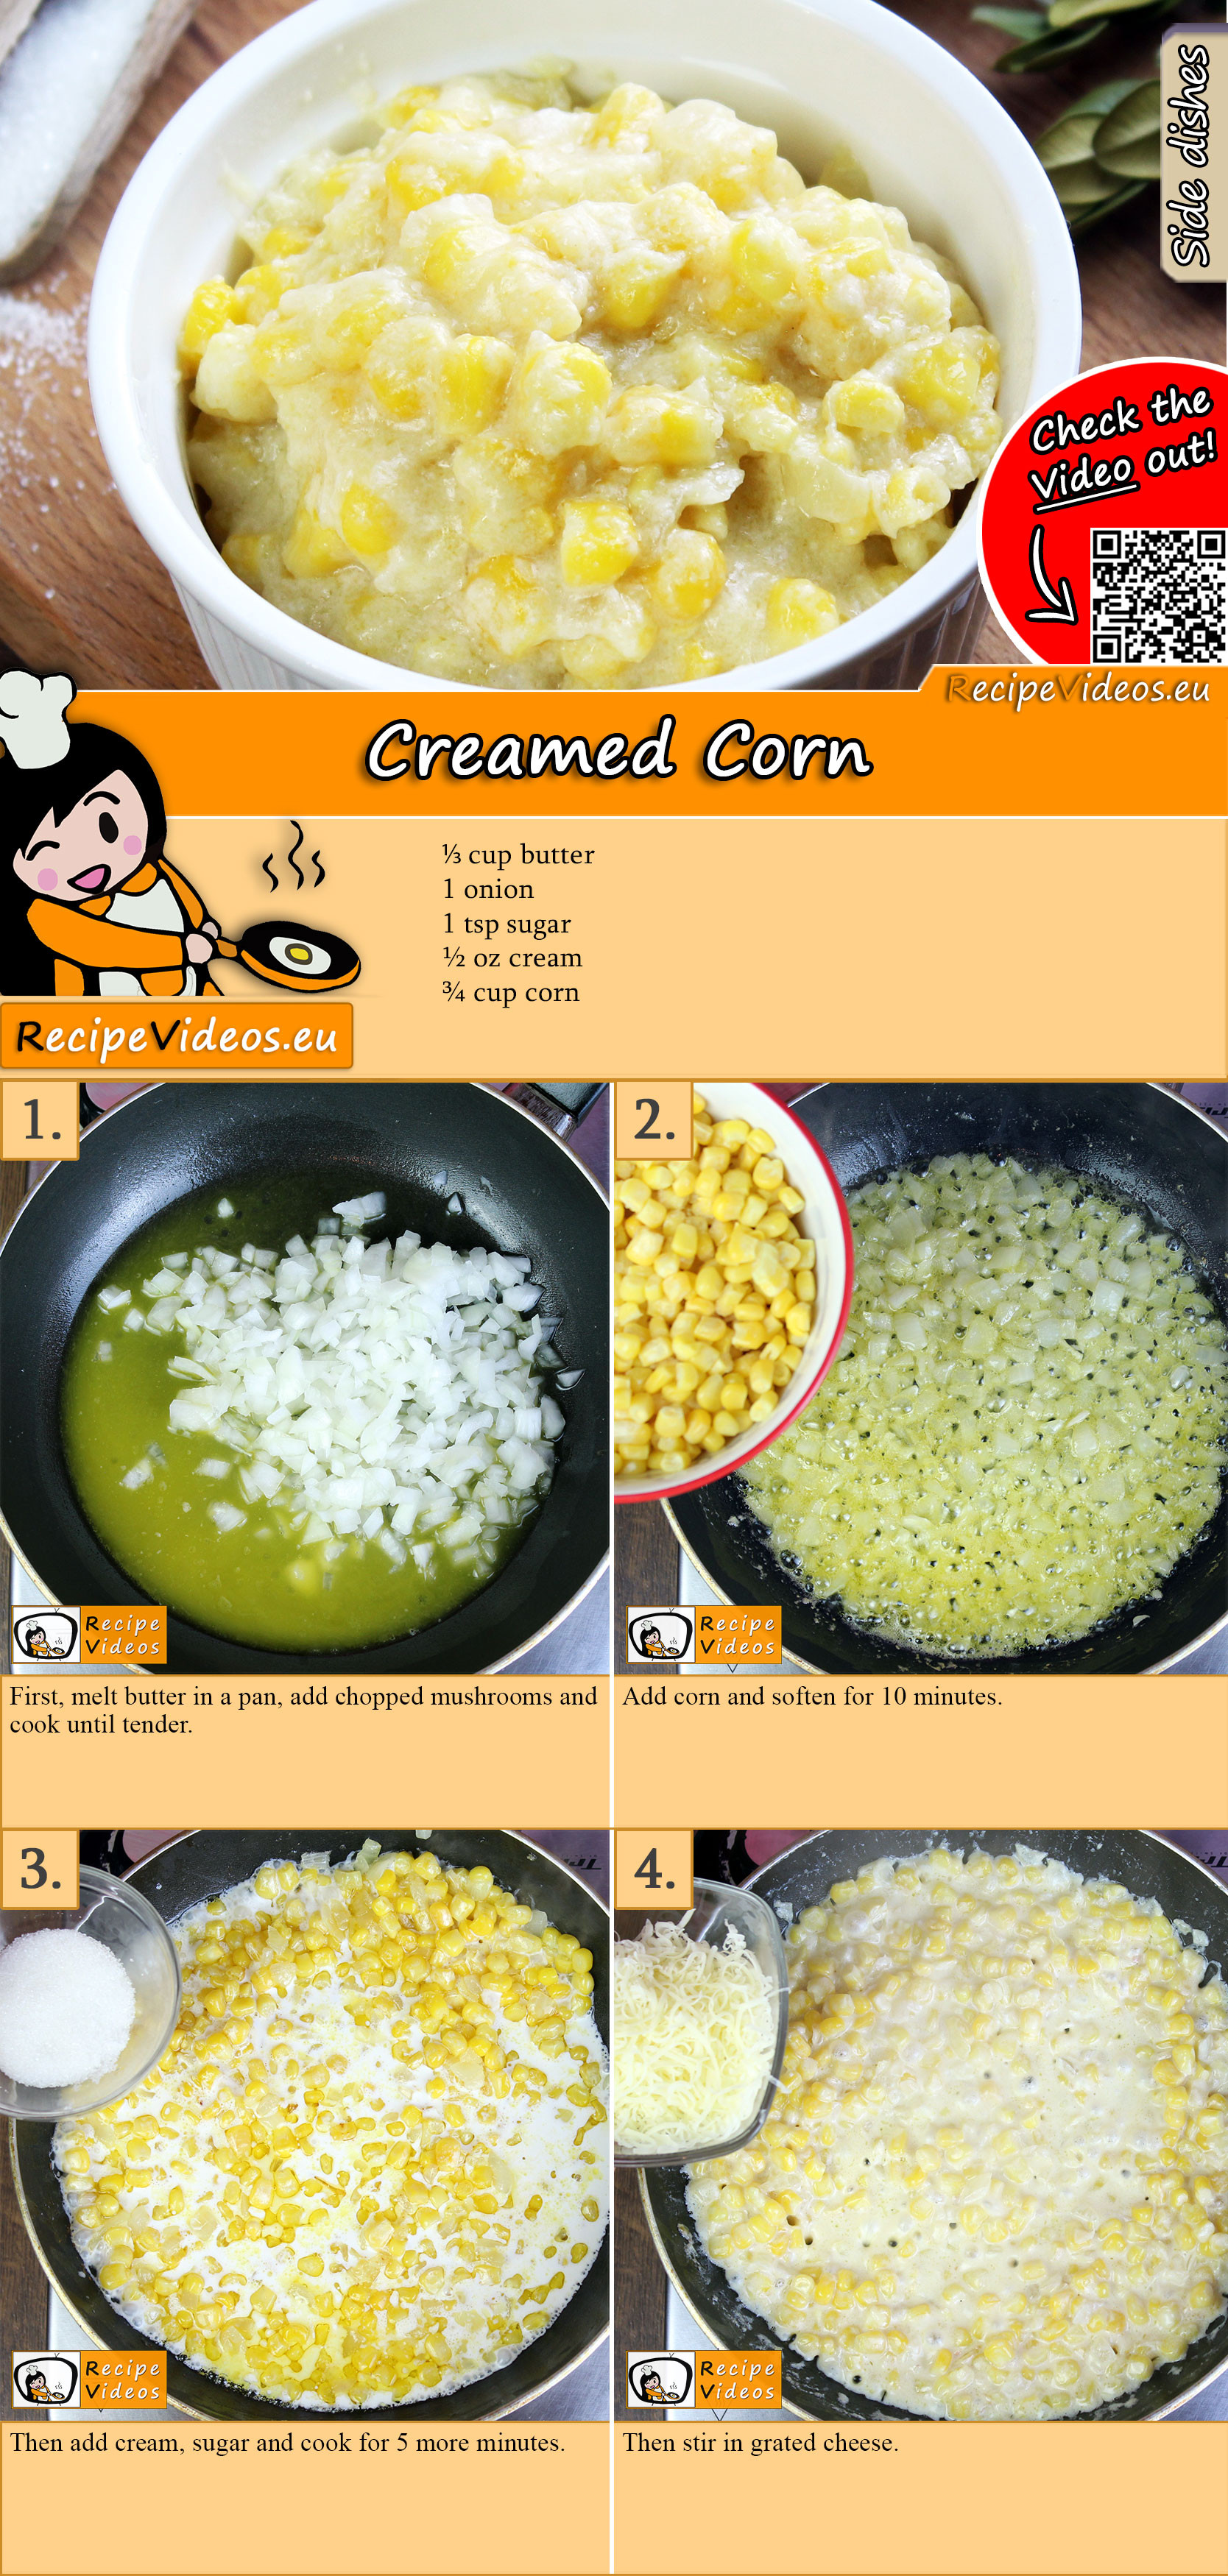 Creamed Corn recipe with video